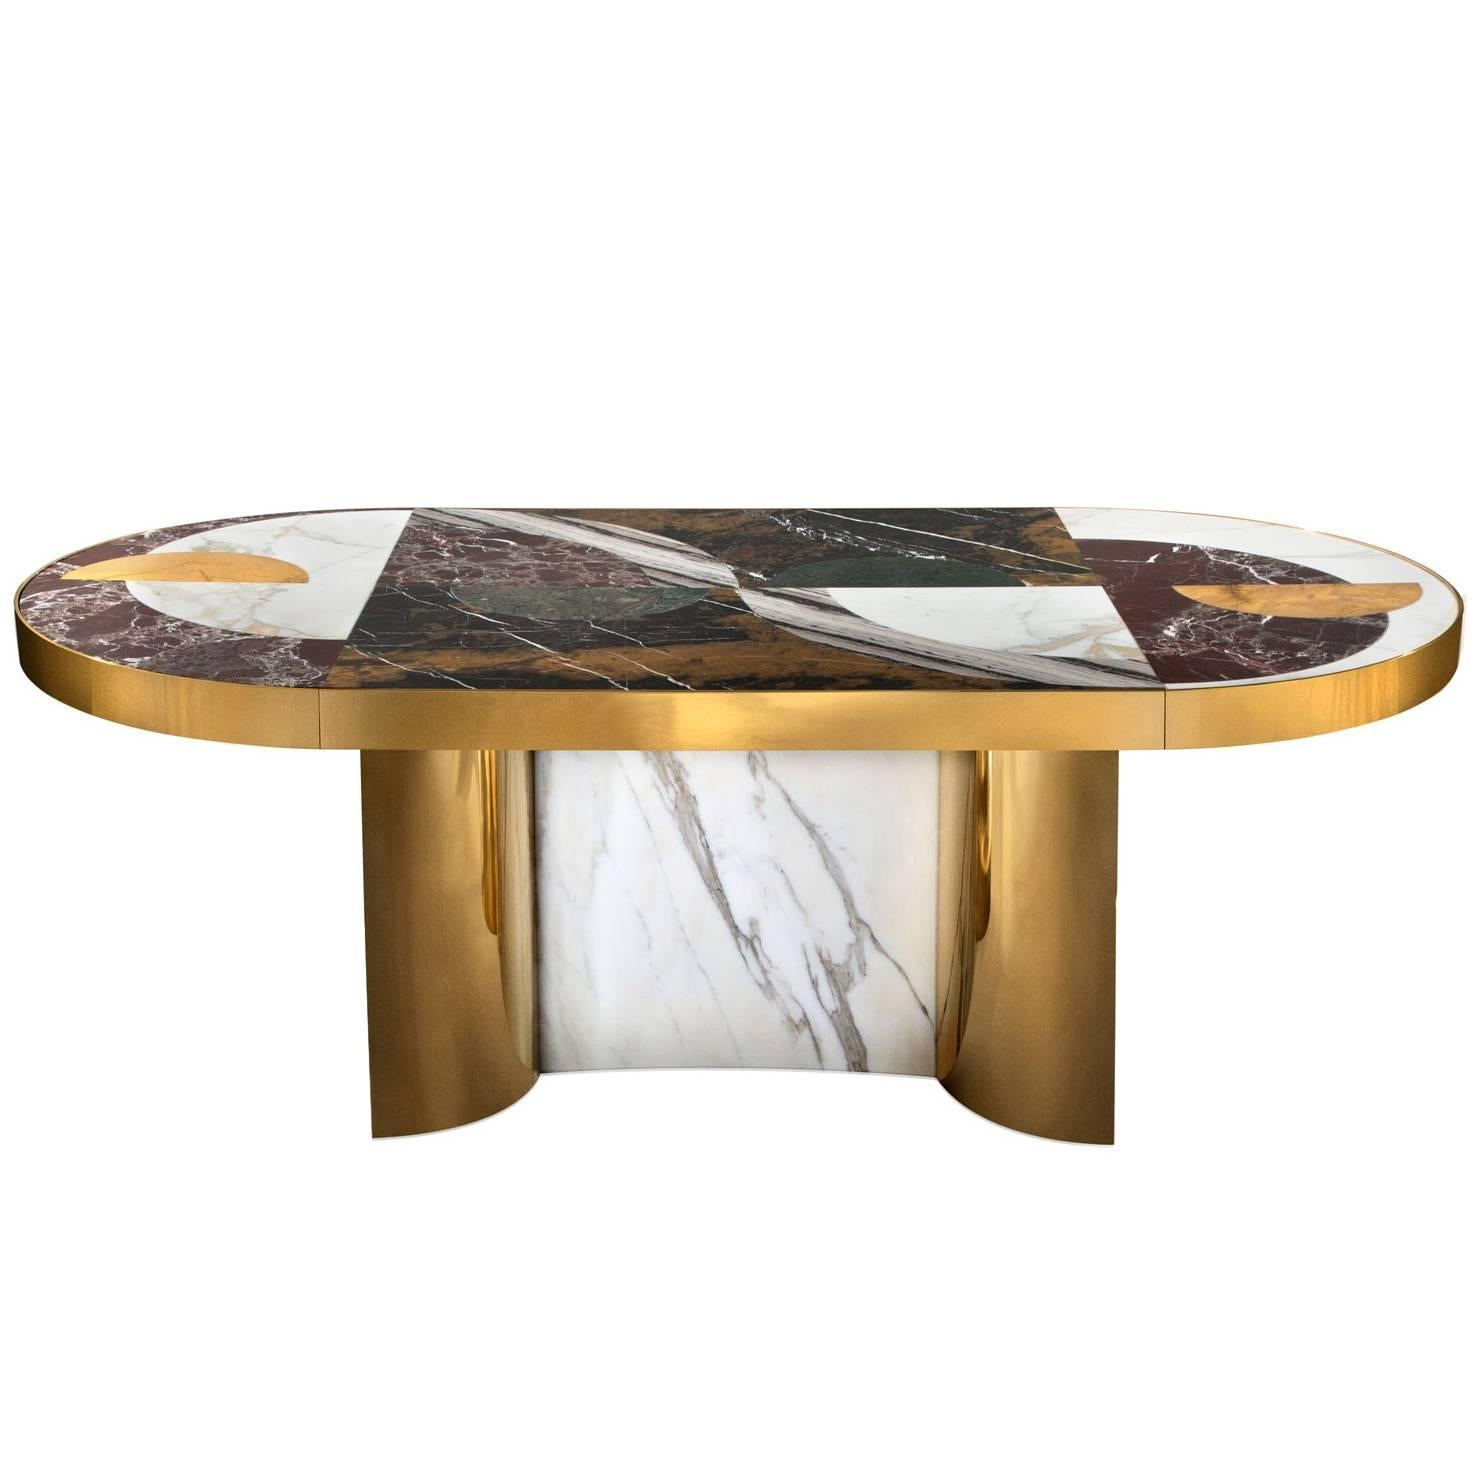 Half Moon Dining Table, Marble and Brass, by Lara Bohinc, In Stock